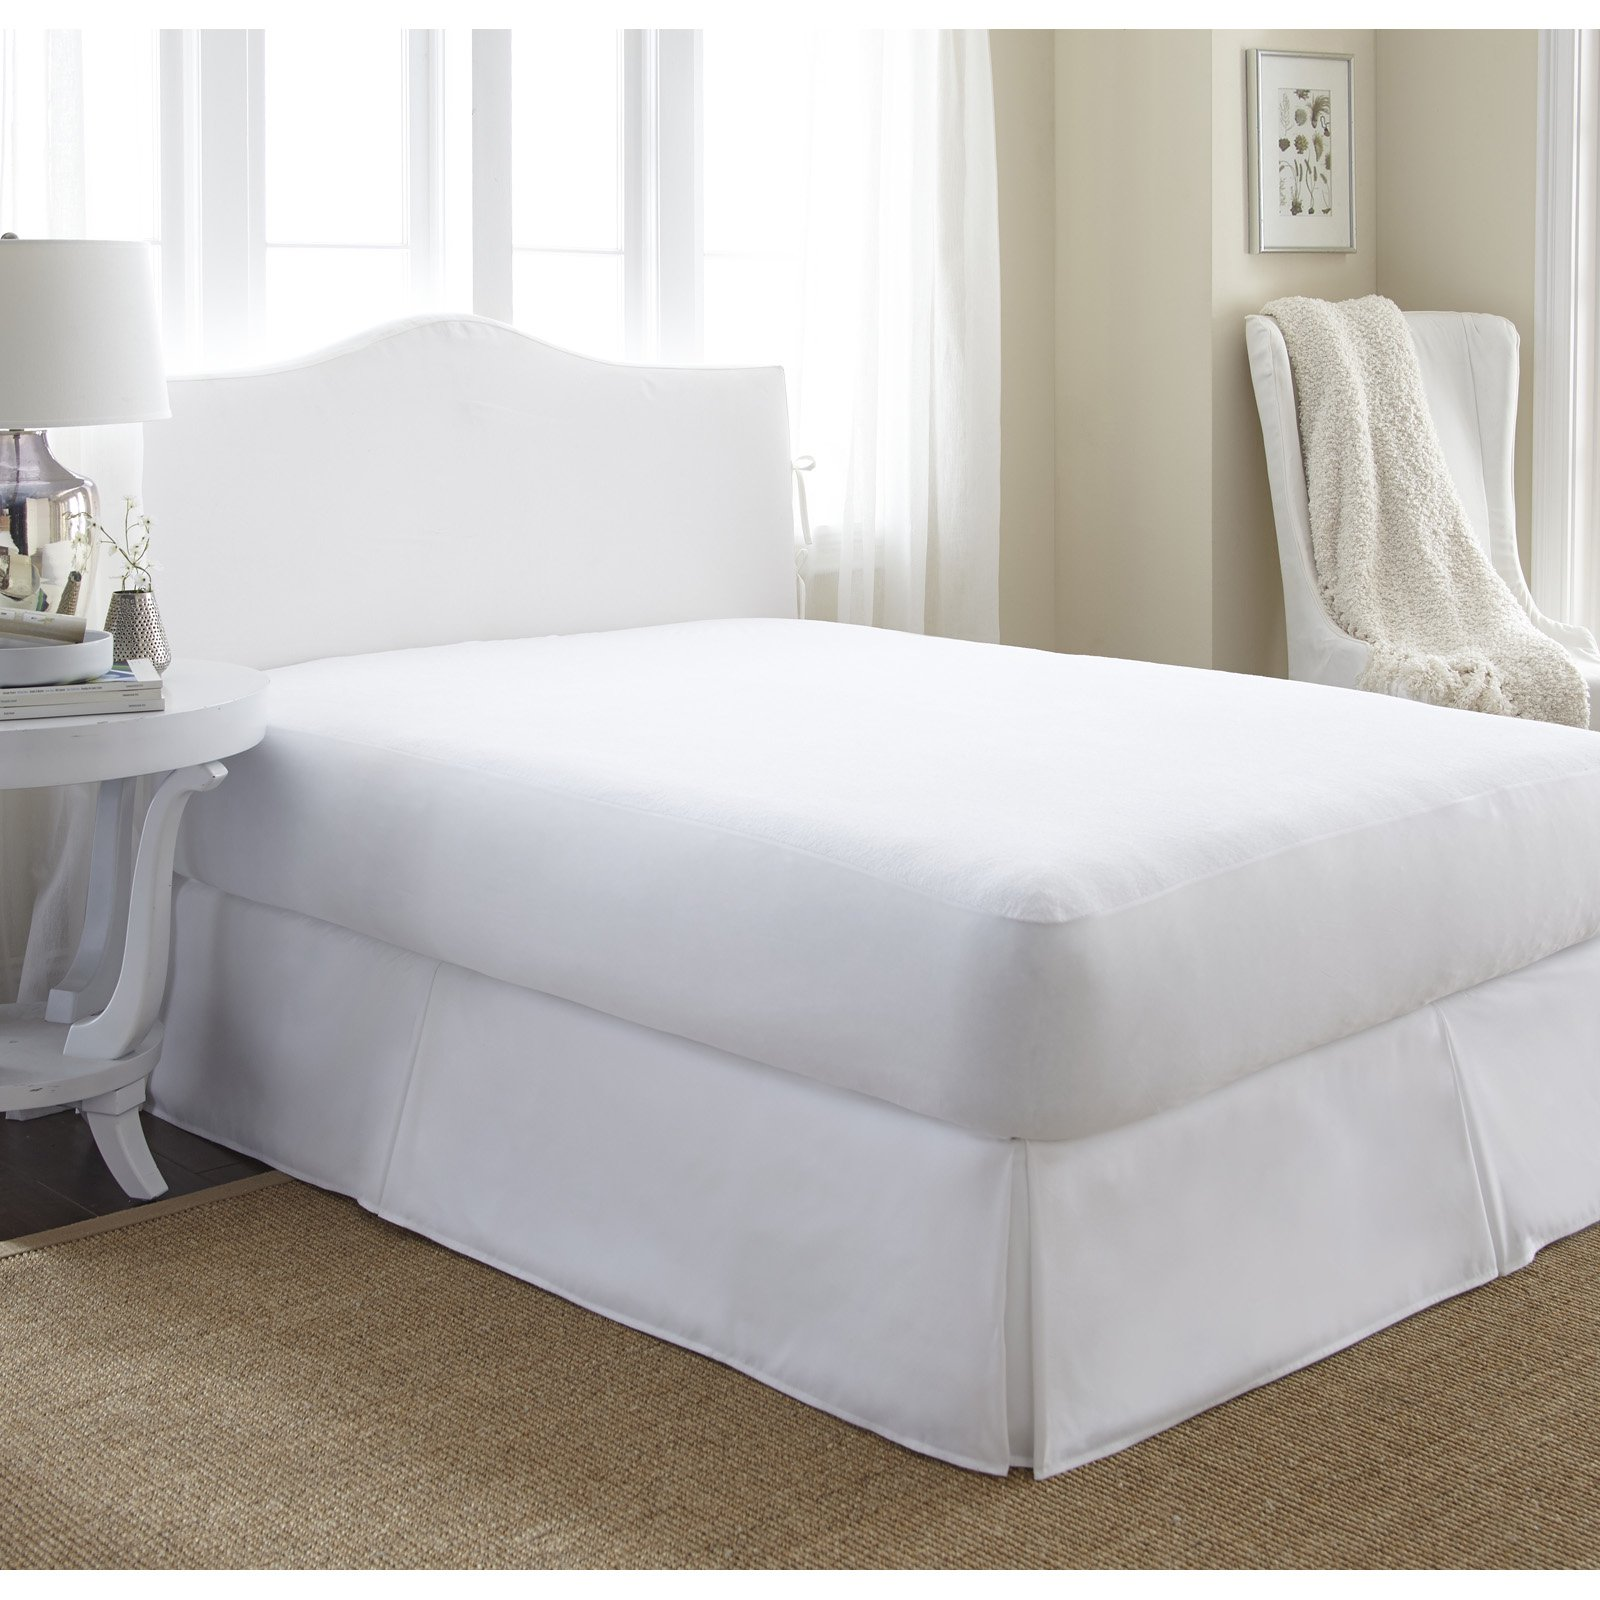 Simply Soft Waterproof Terry Cotton Top Mattress Protector by ienjoy Home